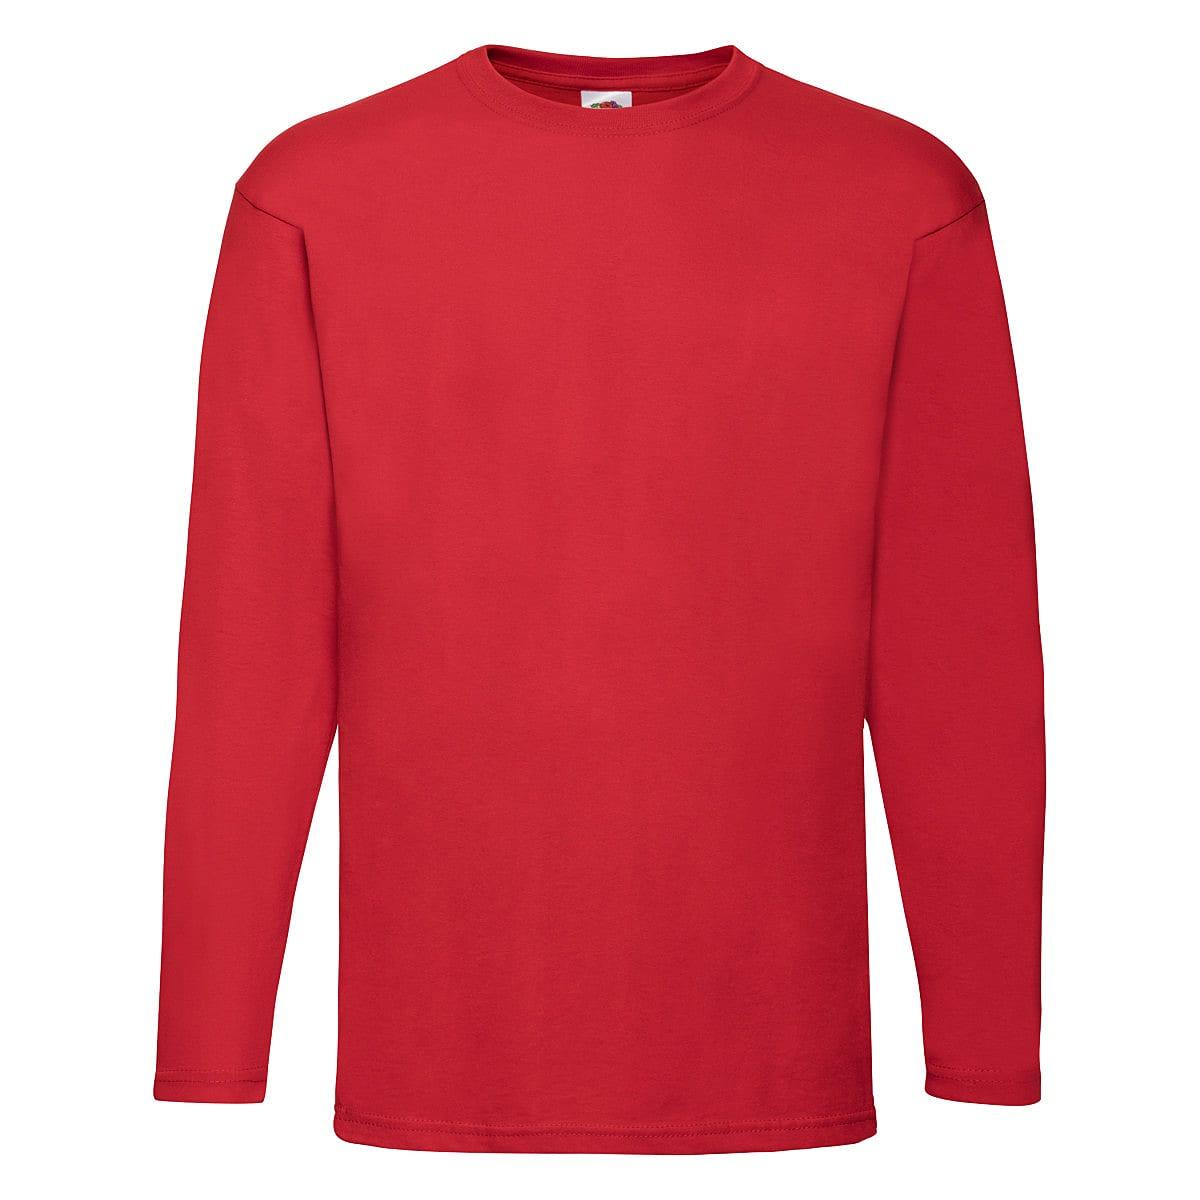 Fruit Of The Loom Valueweight Long-Sleeve T-Shirt in Red (Product Code: 61038)